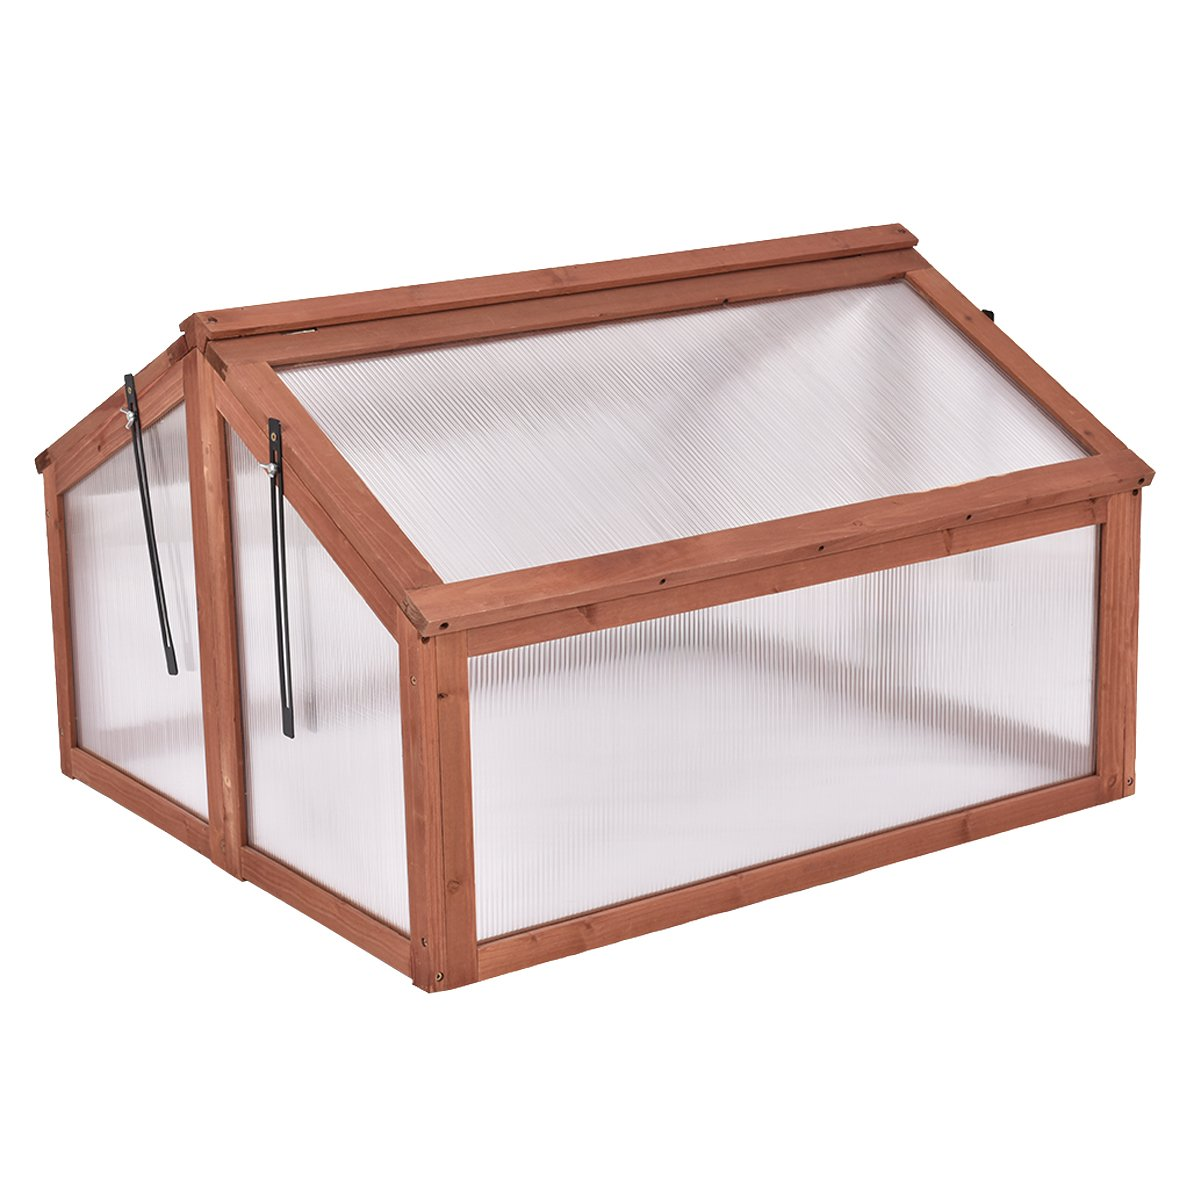 Amazon.com : Giantex Garden Portable Wooden Cold Frame Greenhouse ...